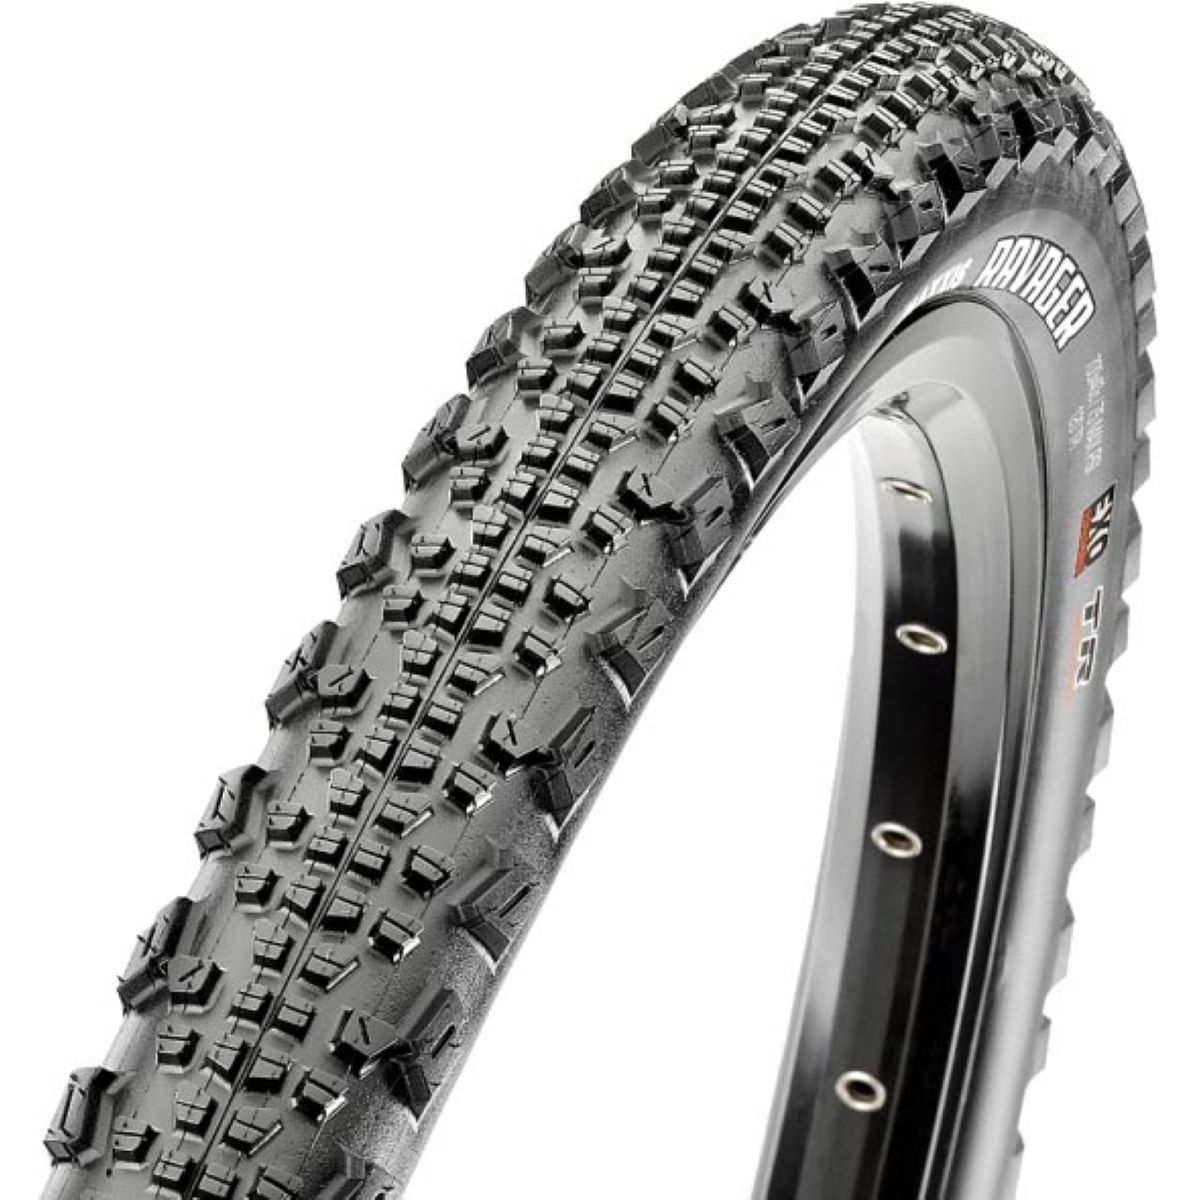 Maxxis Maxxis Ravager Gravel Tyre - SilkShield - TR   Tyres